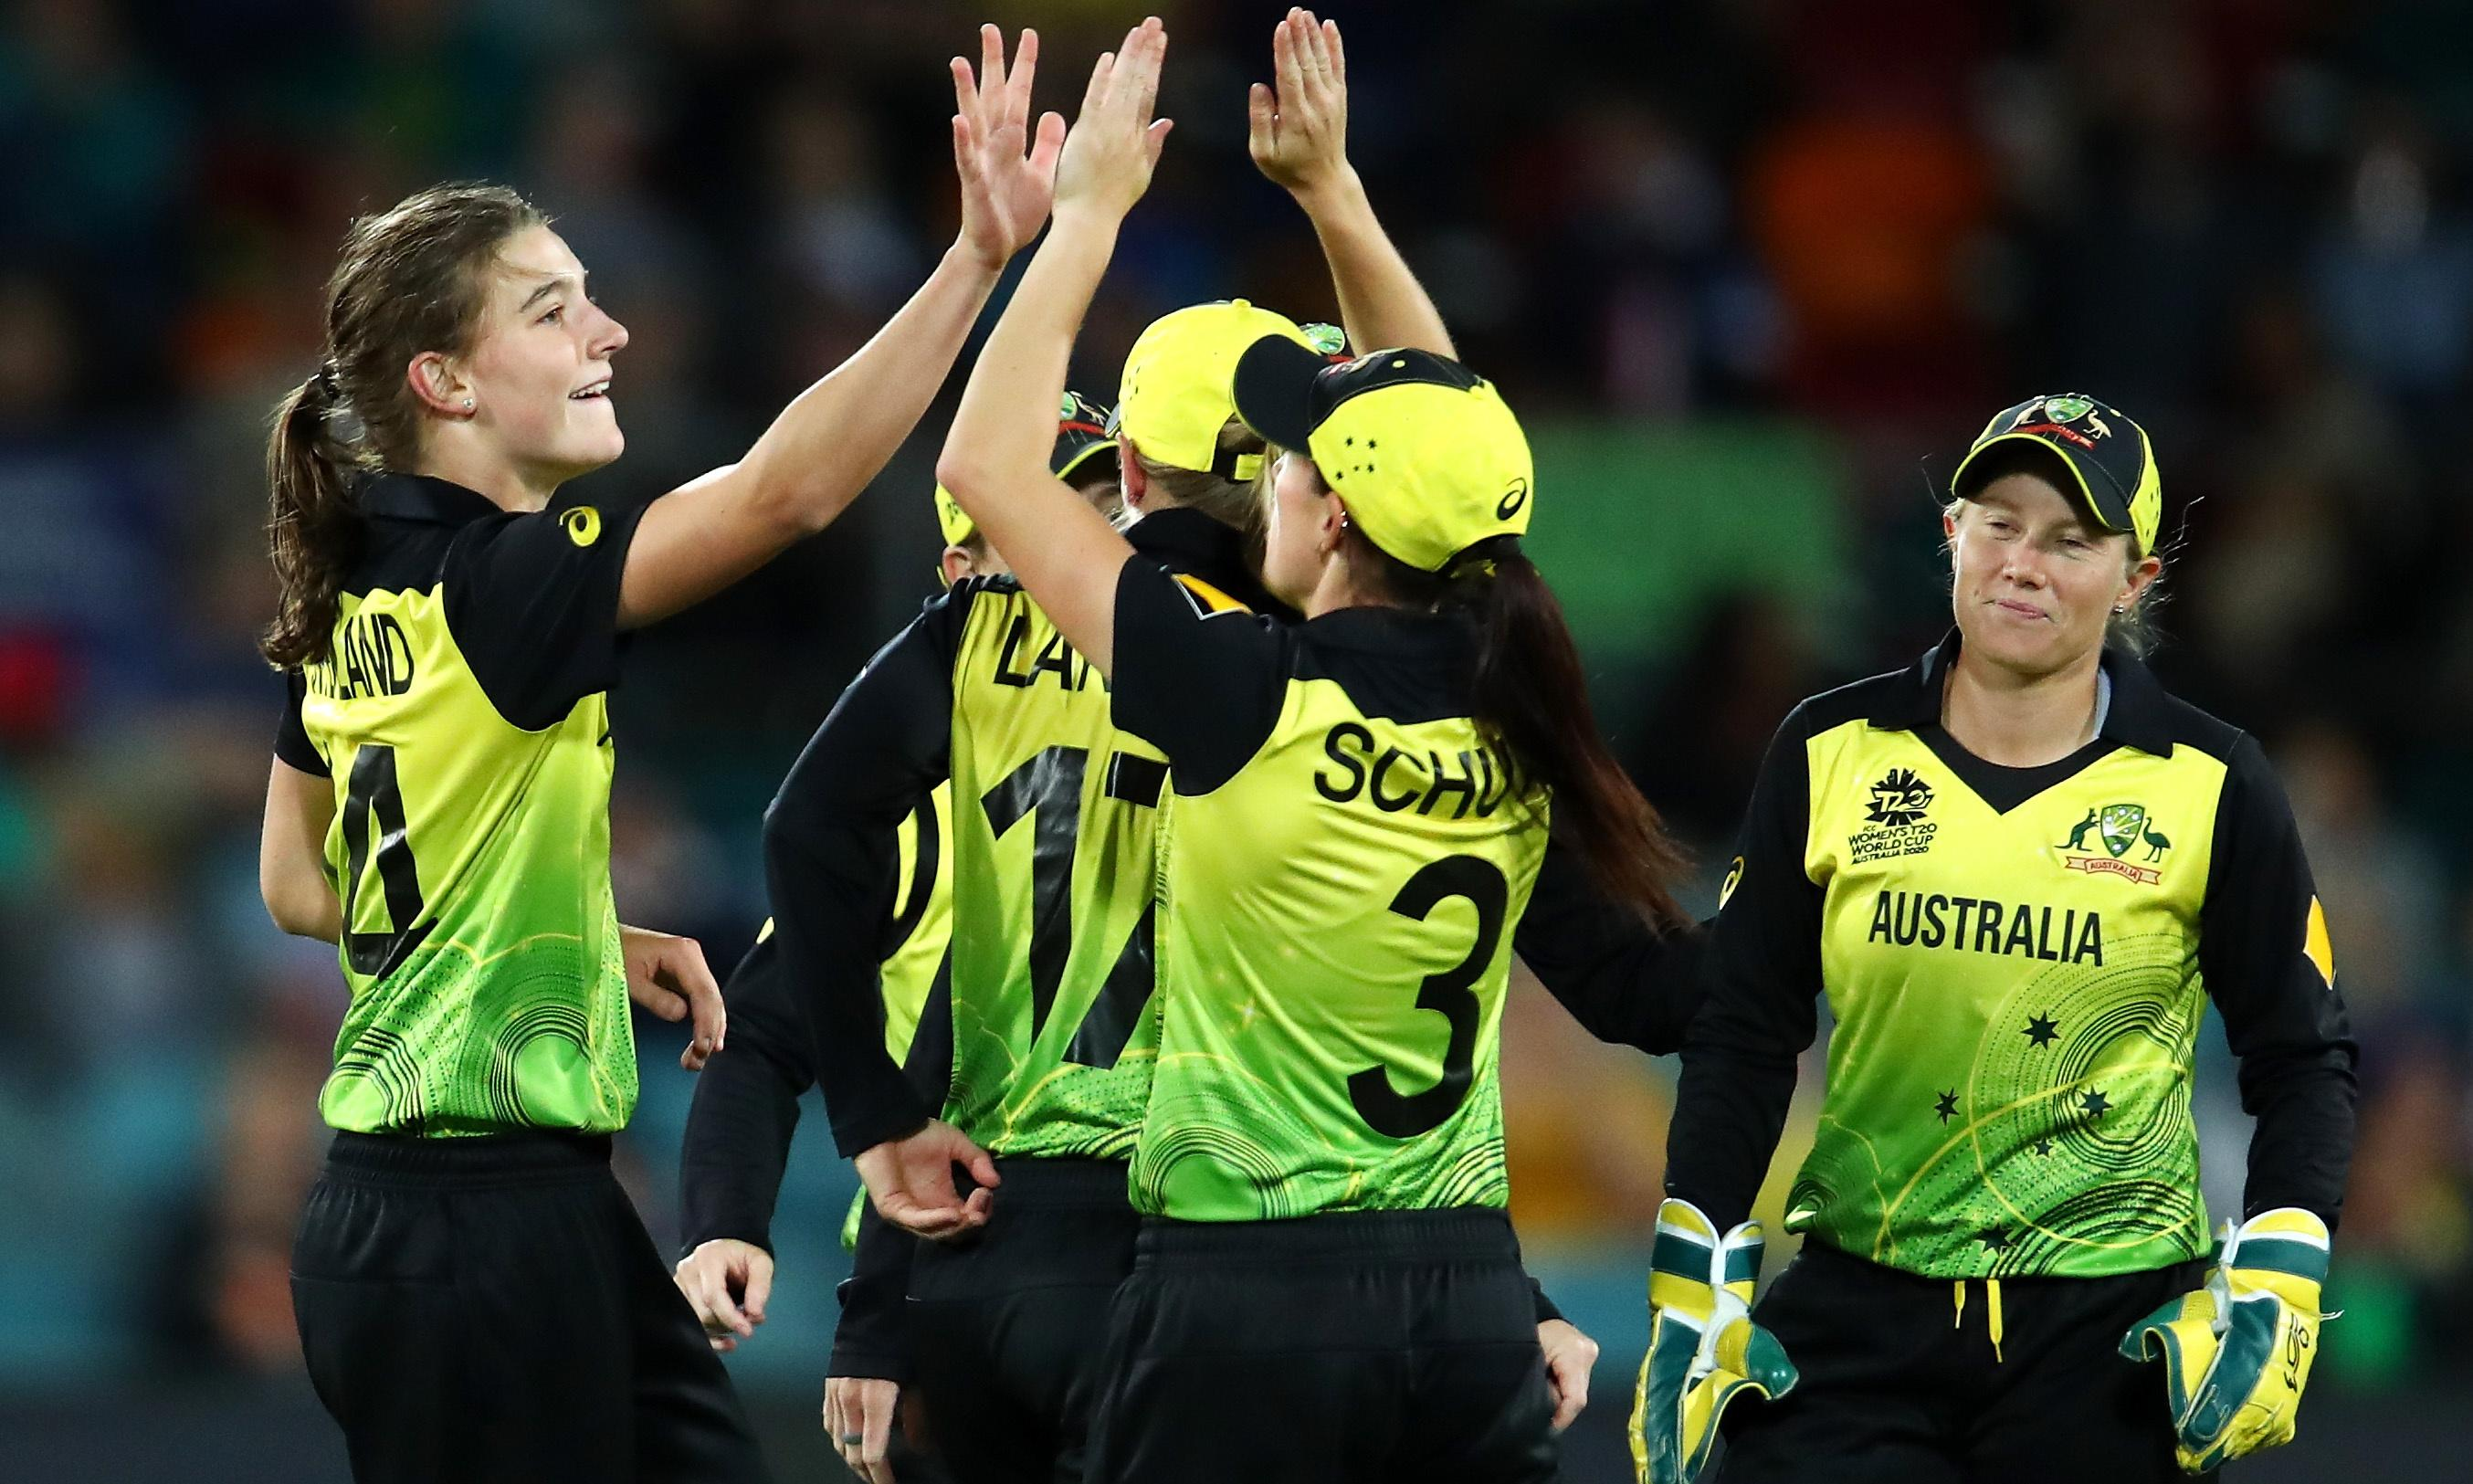 Australia ease to big win over Bangladesh at Women's T20 World Cup